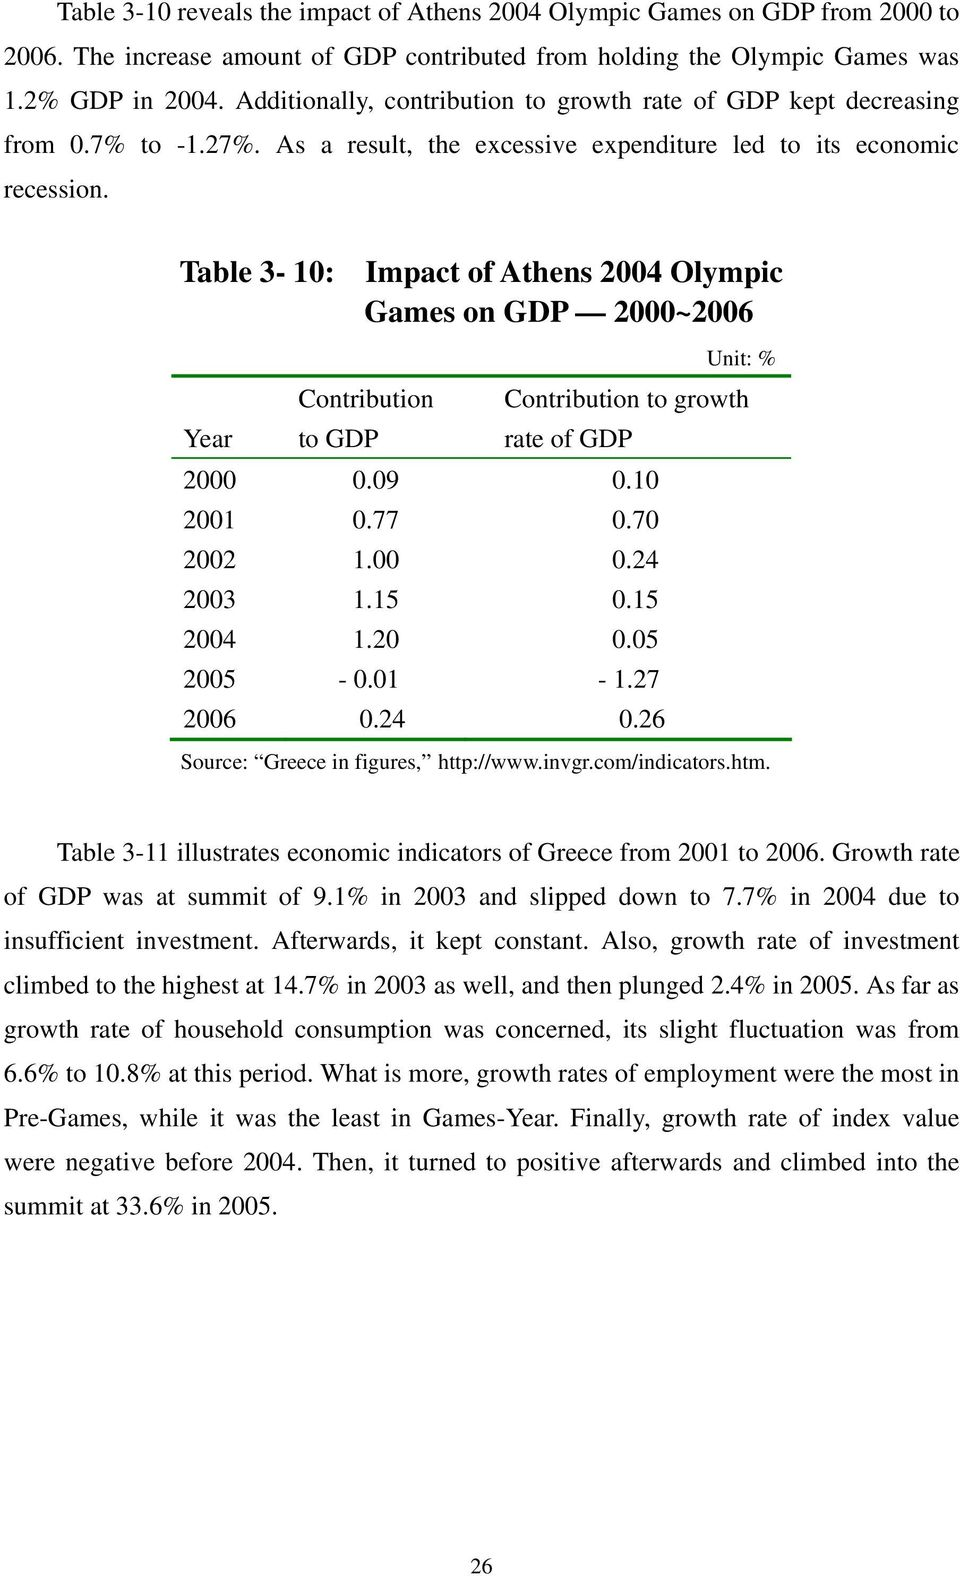 Table 3-10: Impact of Athens 2004 Olympic Games on GDP 2000~2006 Unit: % Year Contribution to GDP Contribution to growth rate of GDP 2000 0.09 0.10 2001 0.77 0.70 2002 1.00 0.24 2003 1.15 0.15 2004 1.